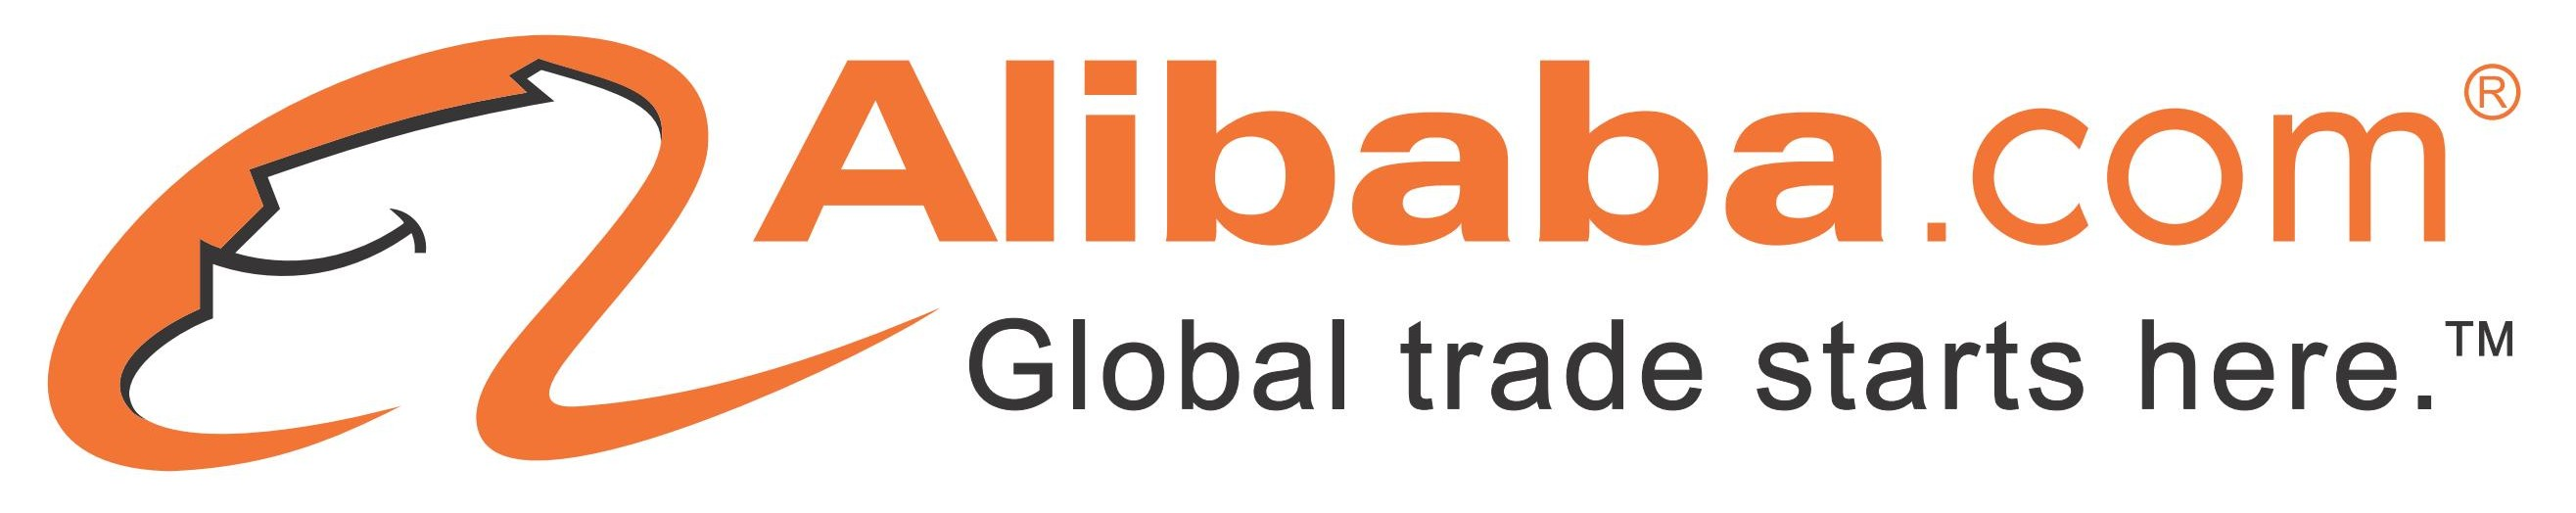 Alibaba Promotions & Discounts